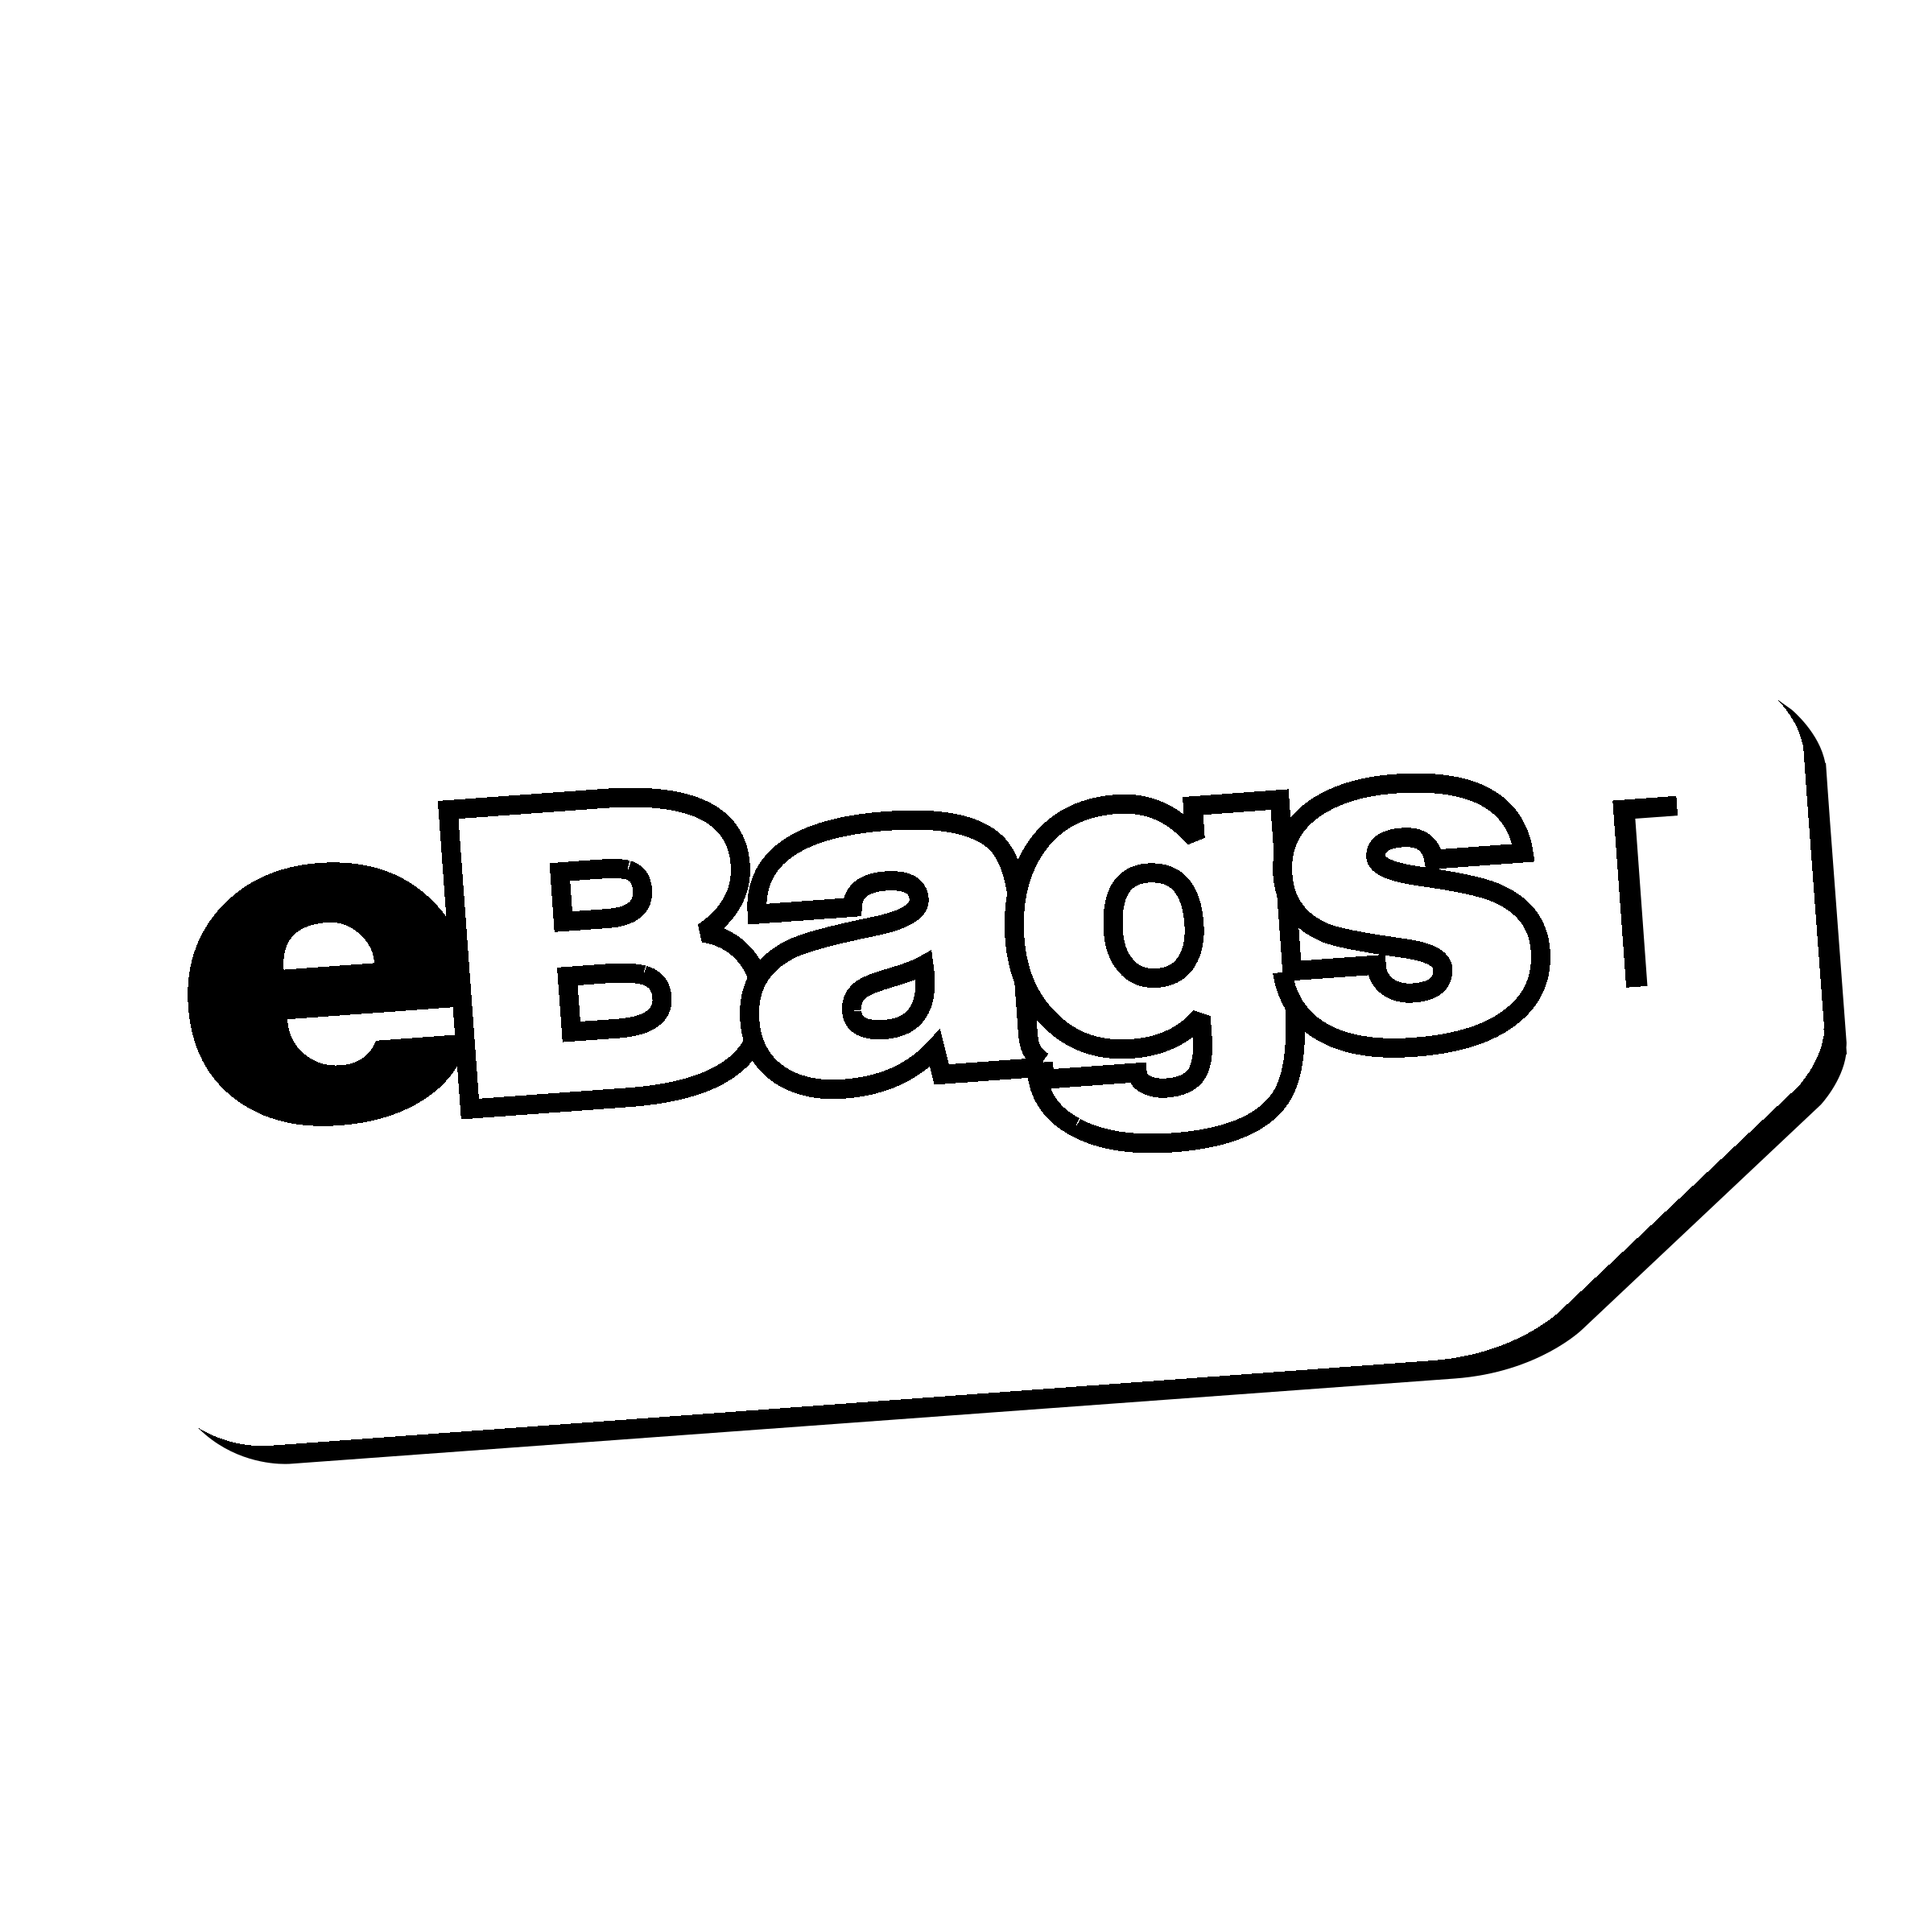 eBags Logo PNG Transparent & SVG Vector.